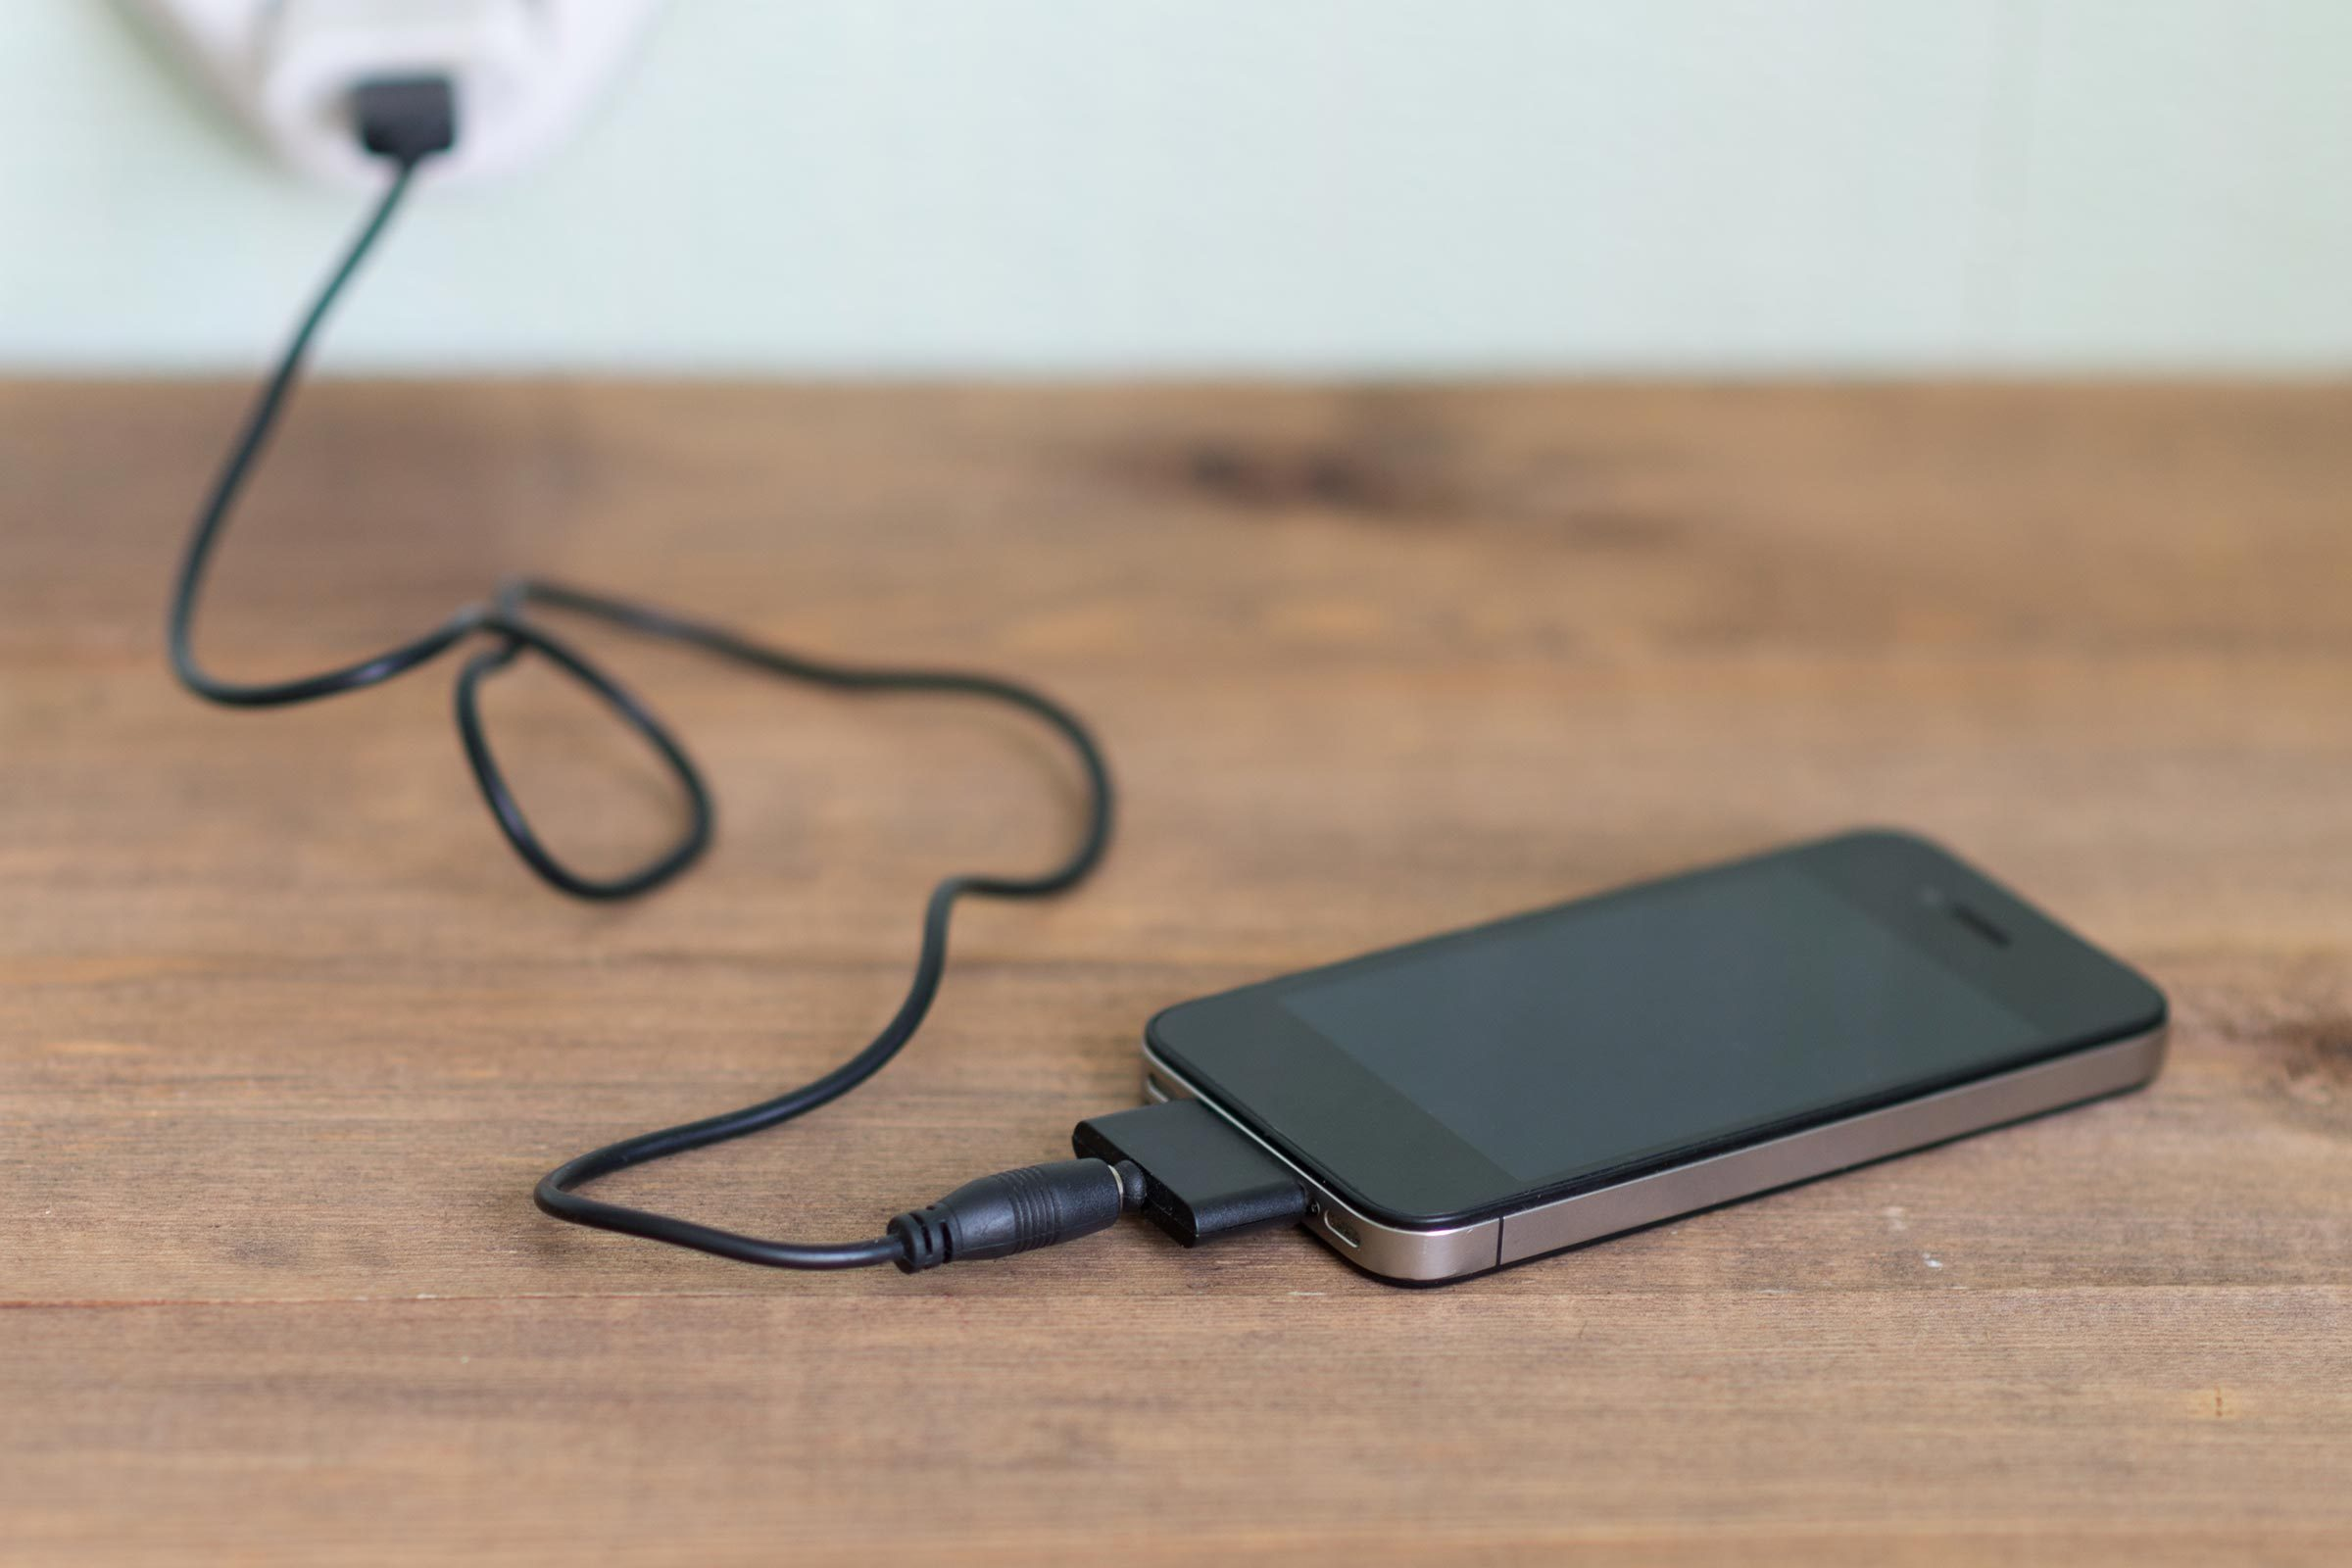 phone charge wall wire cord